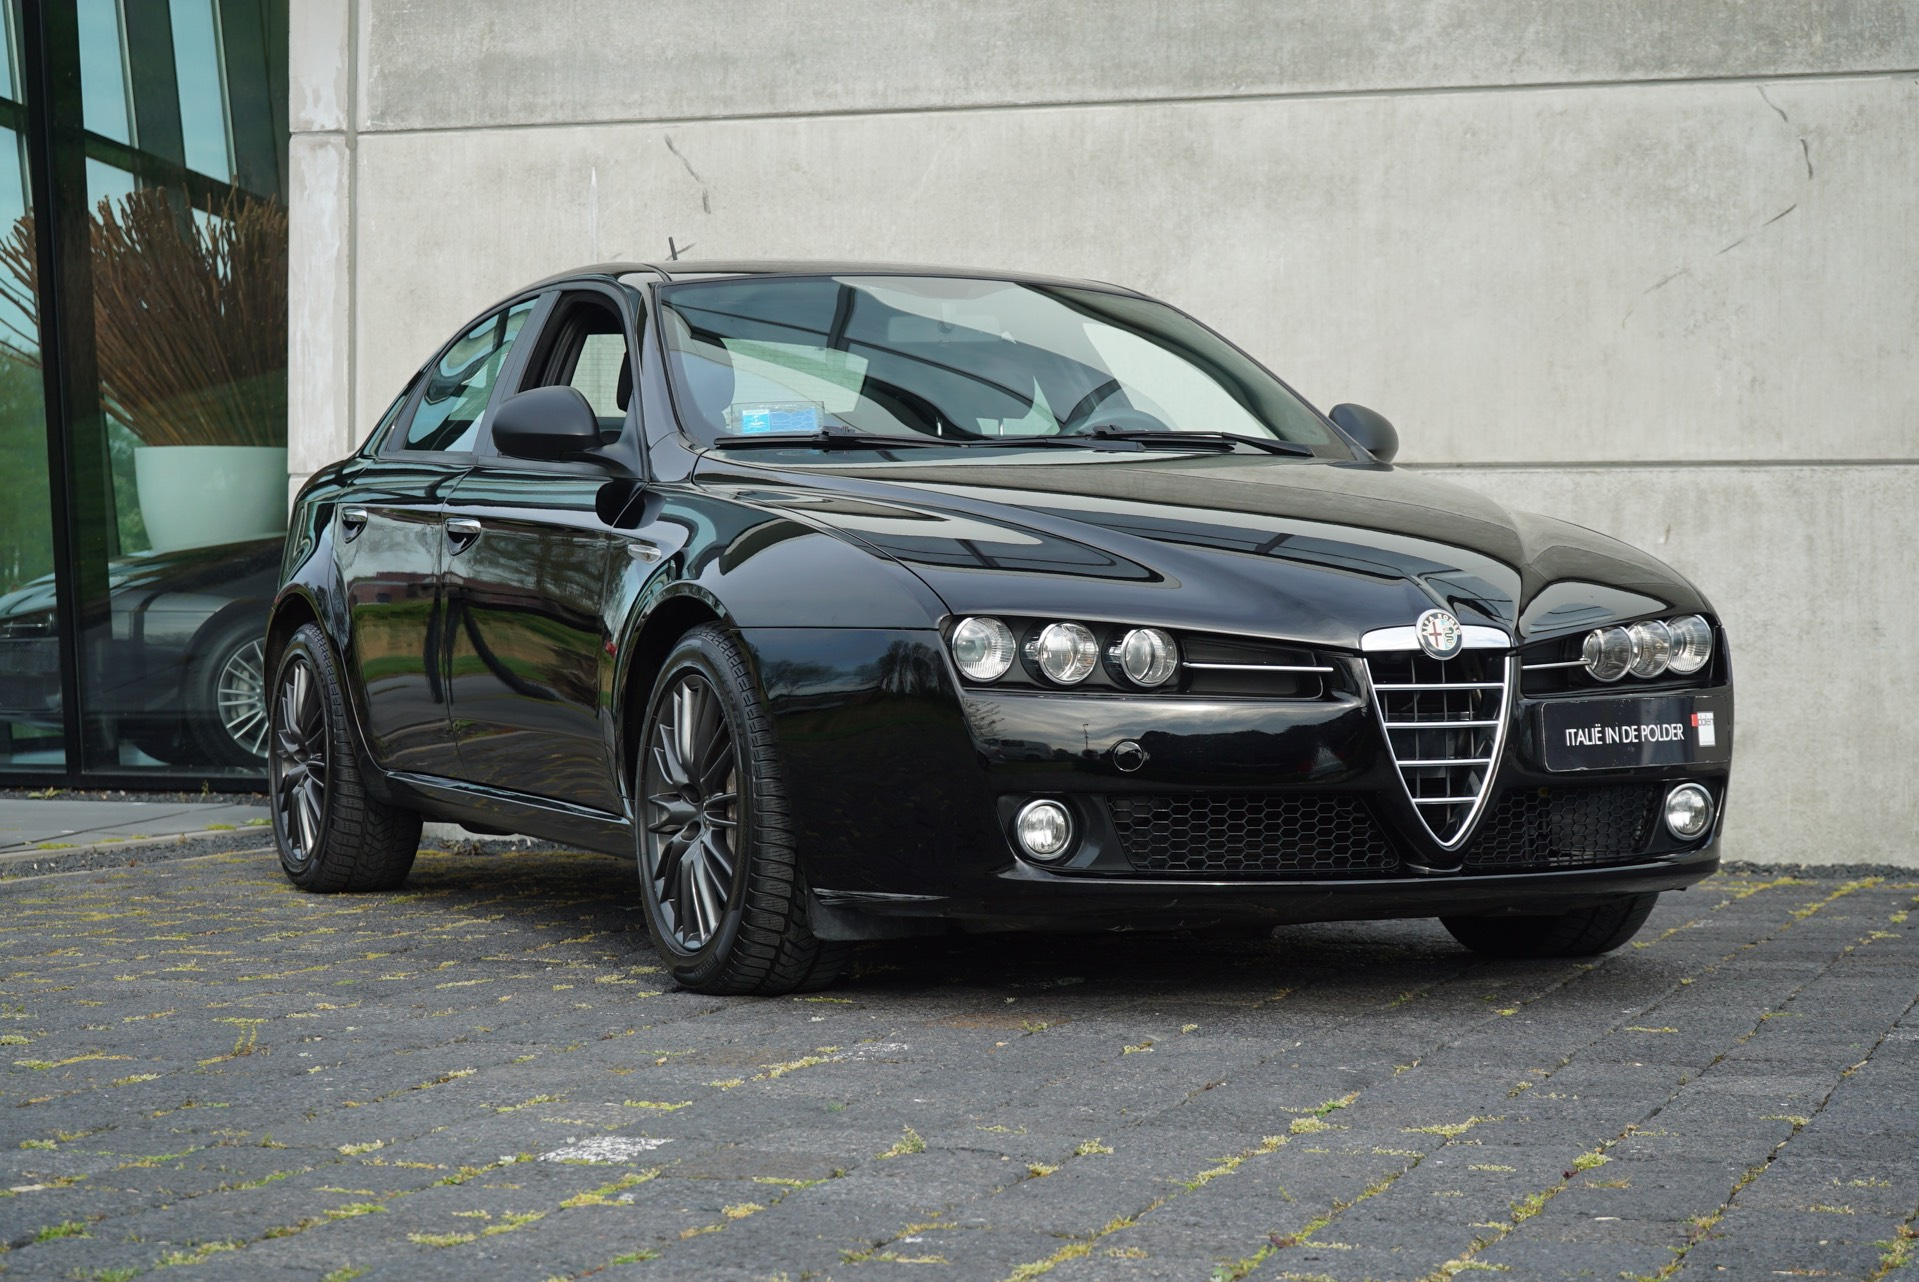 ALFA 159 1750i TURBO DISTINCTIVE TBI